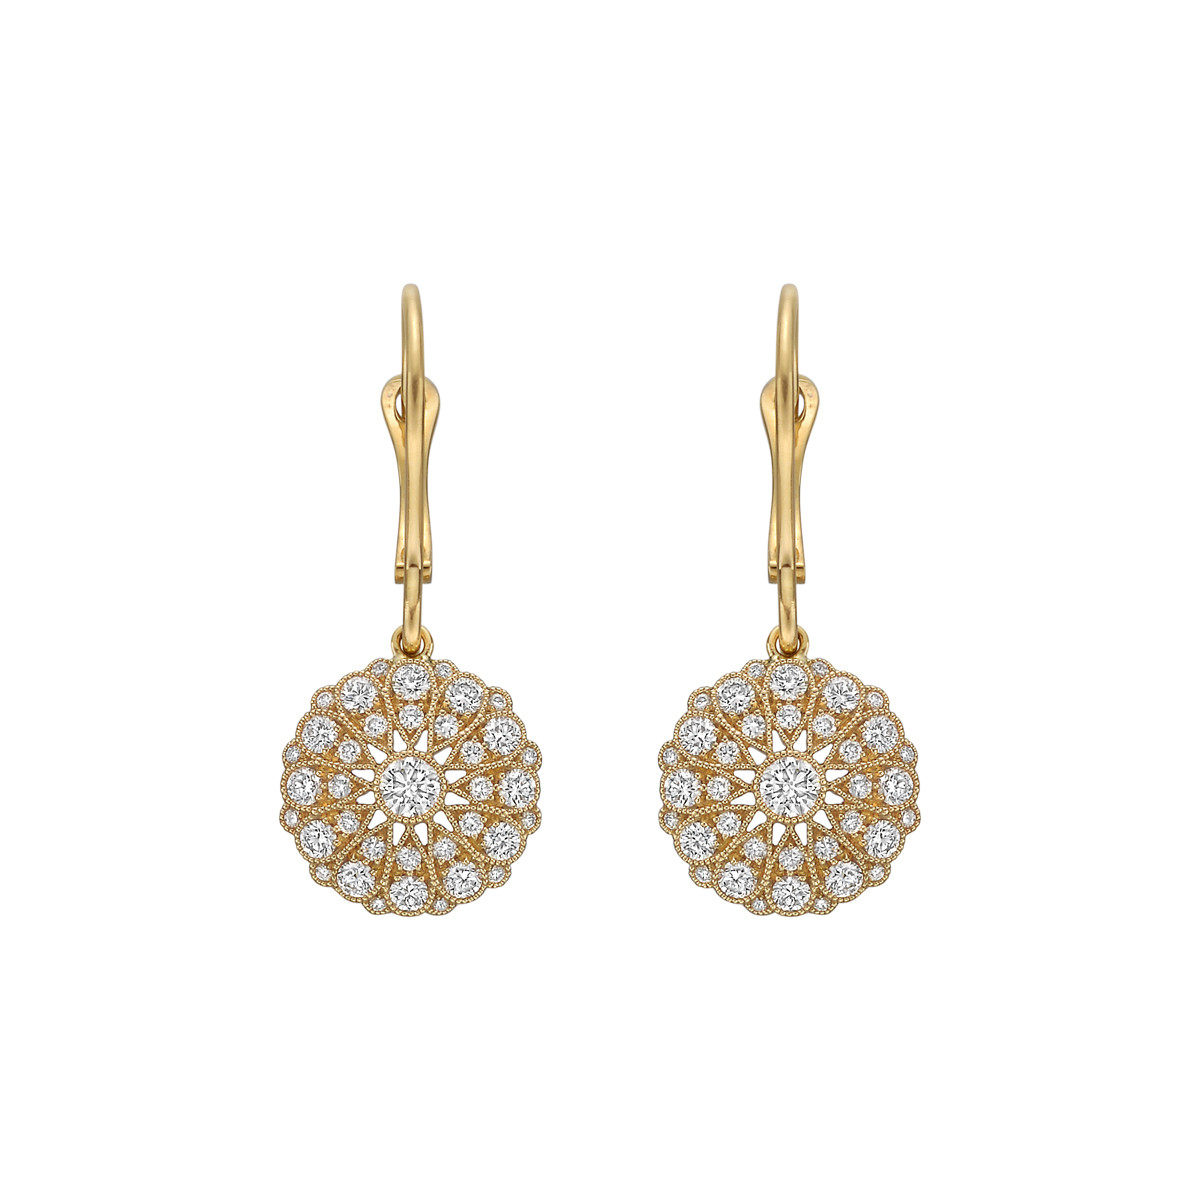 18k Yellow Gold & Diamond Cluster Drop Earrings